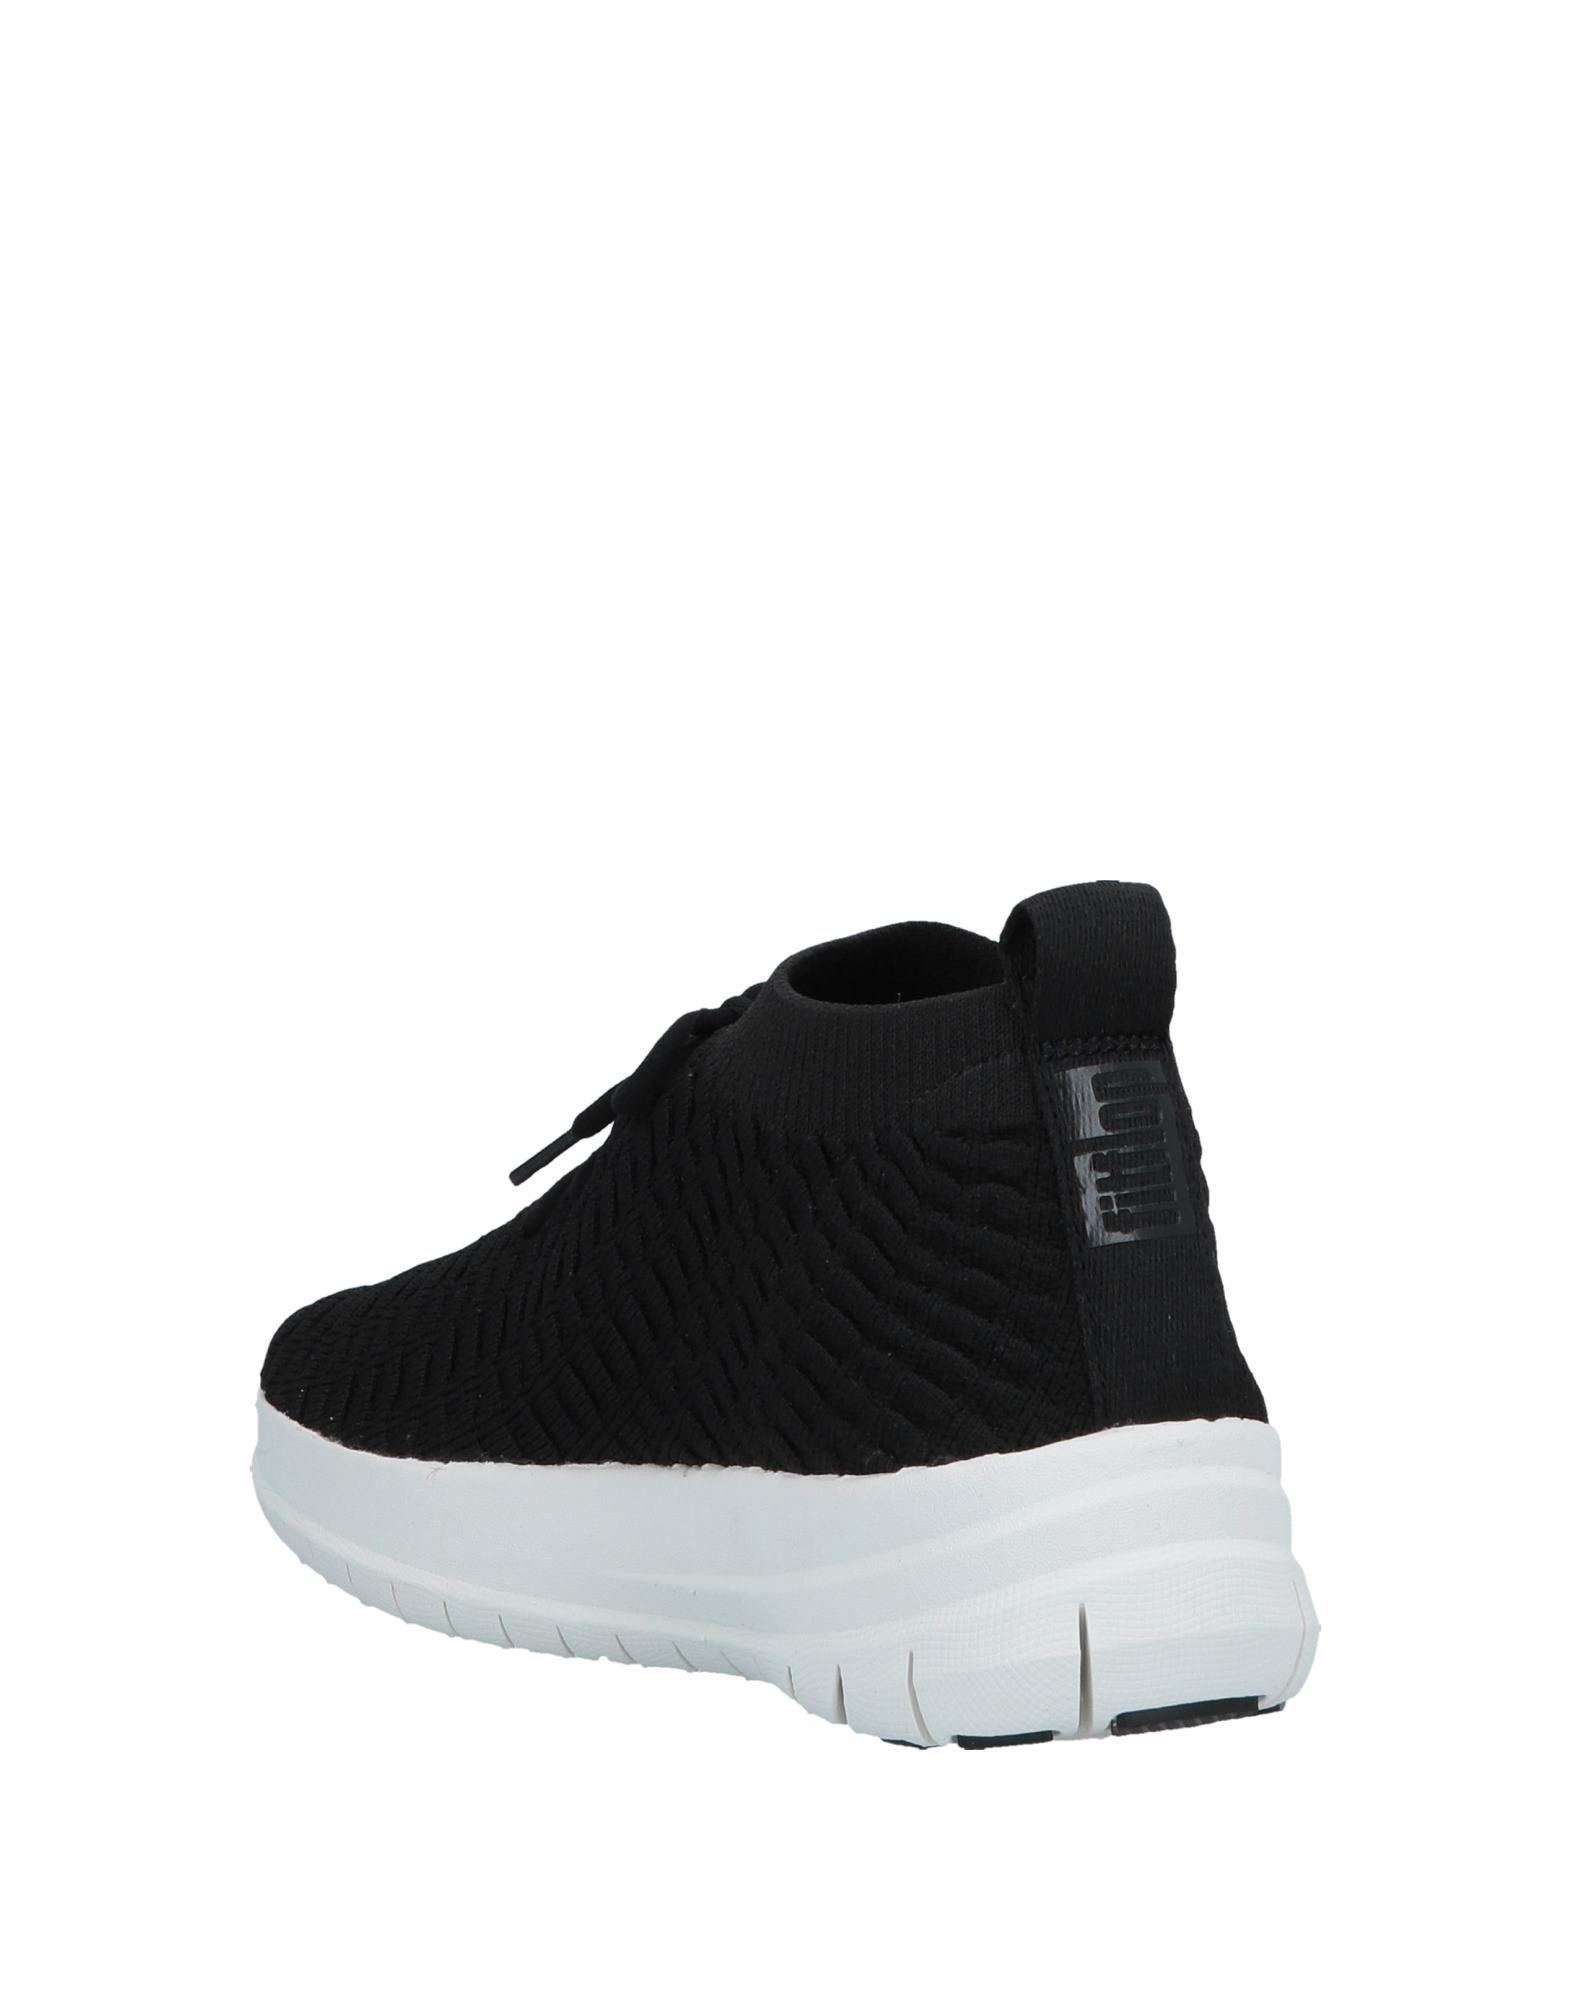 Fitflop Black Sneakers